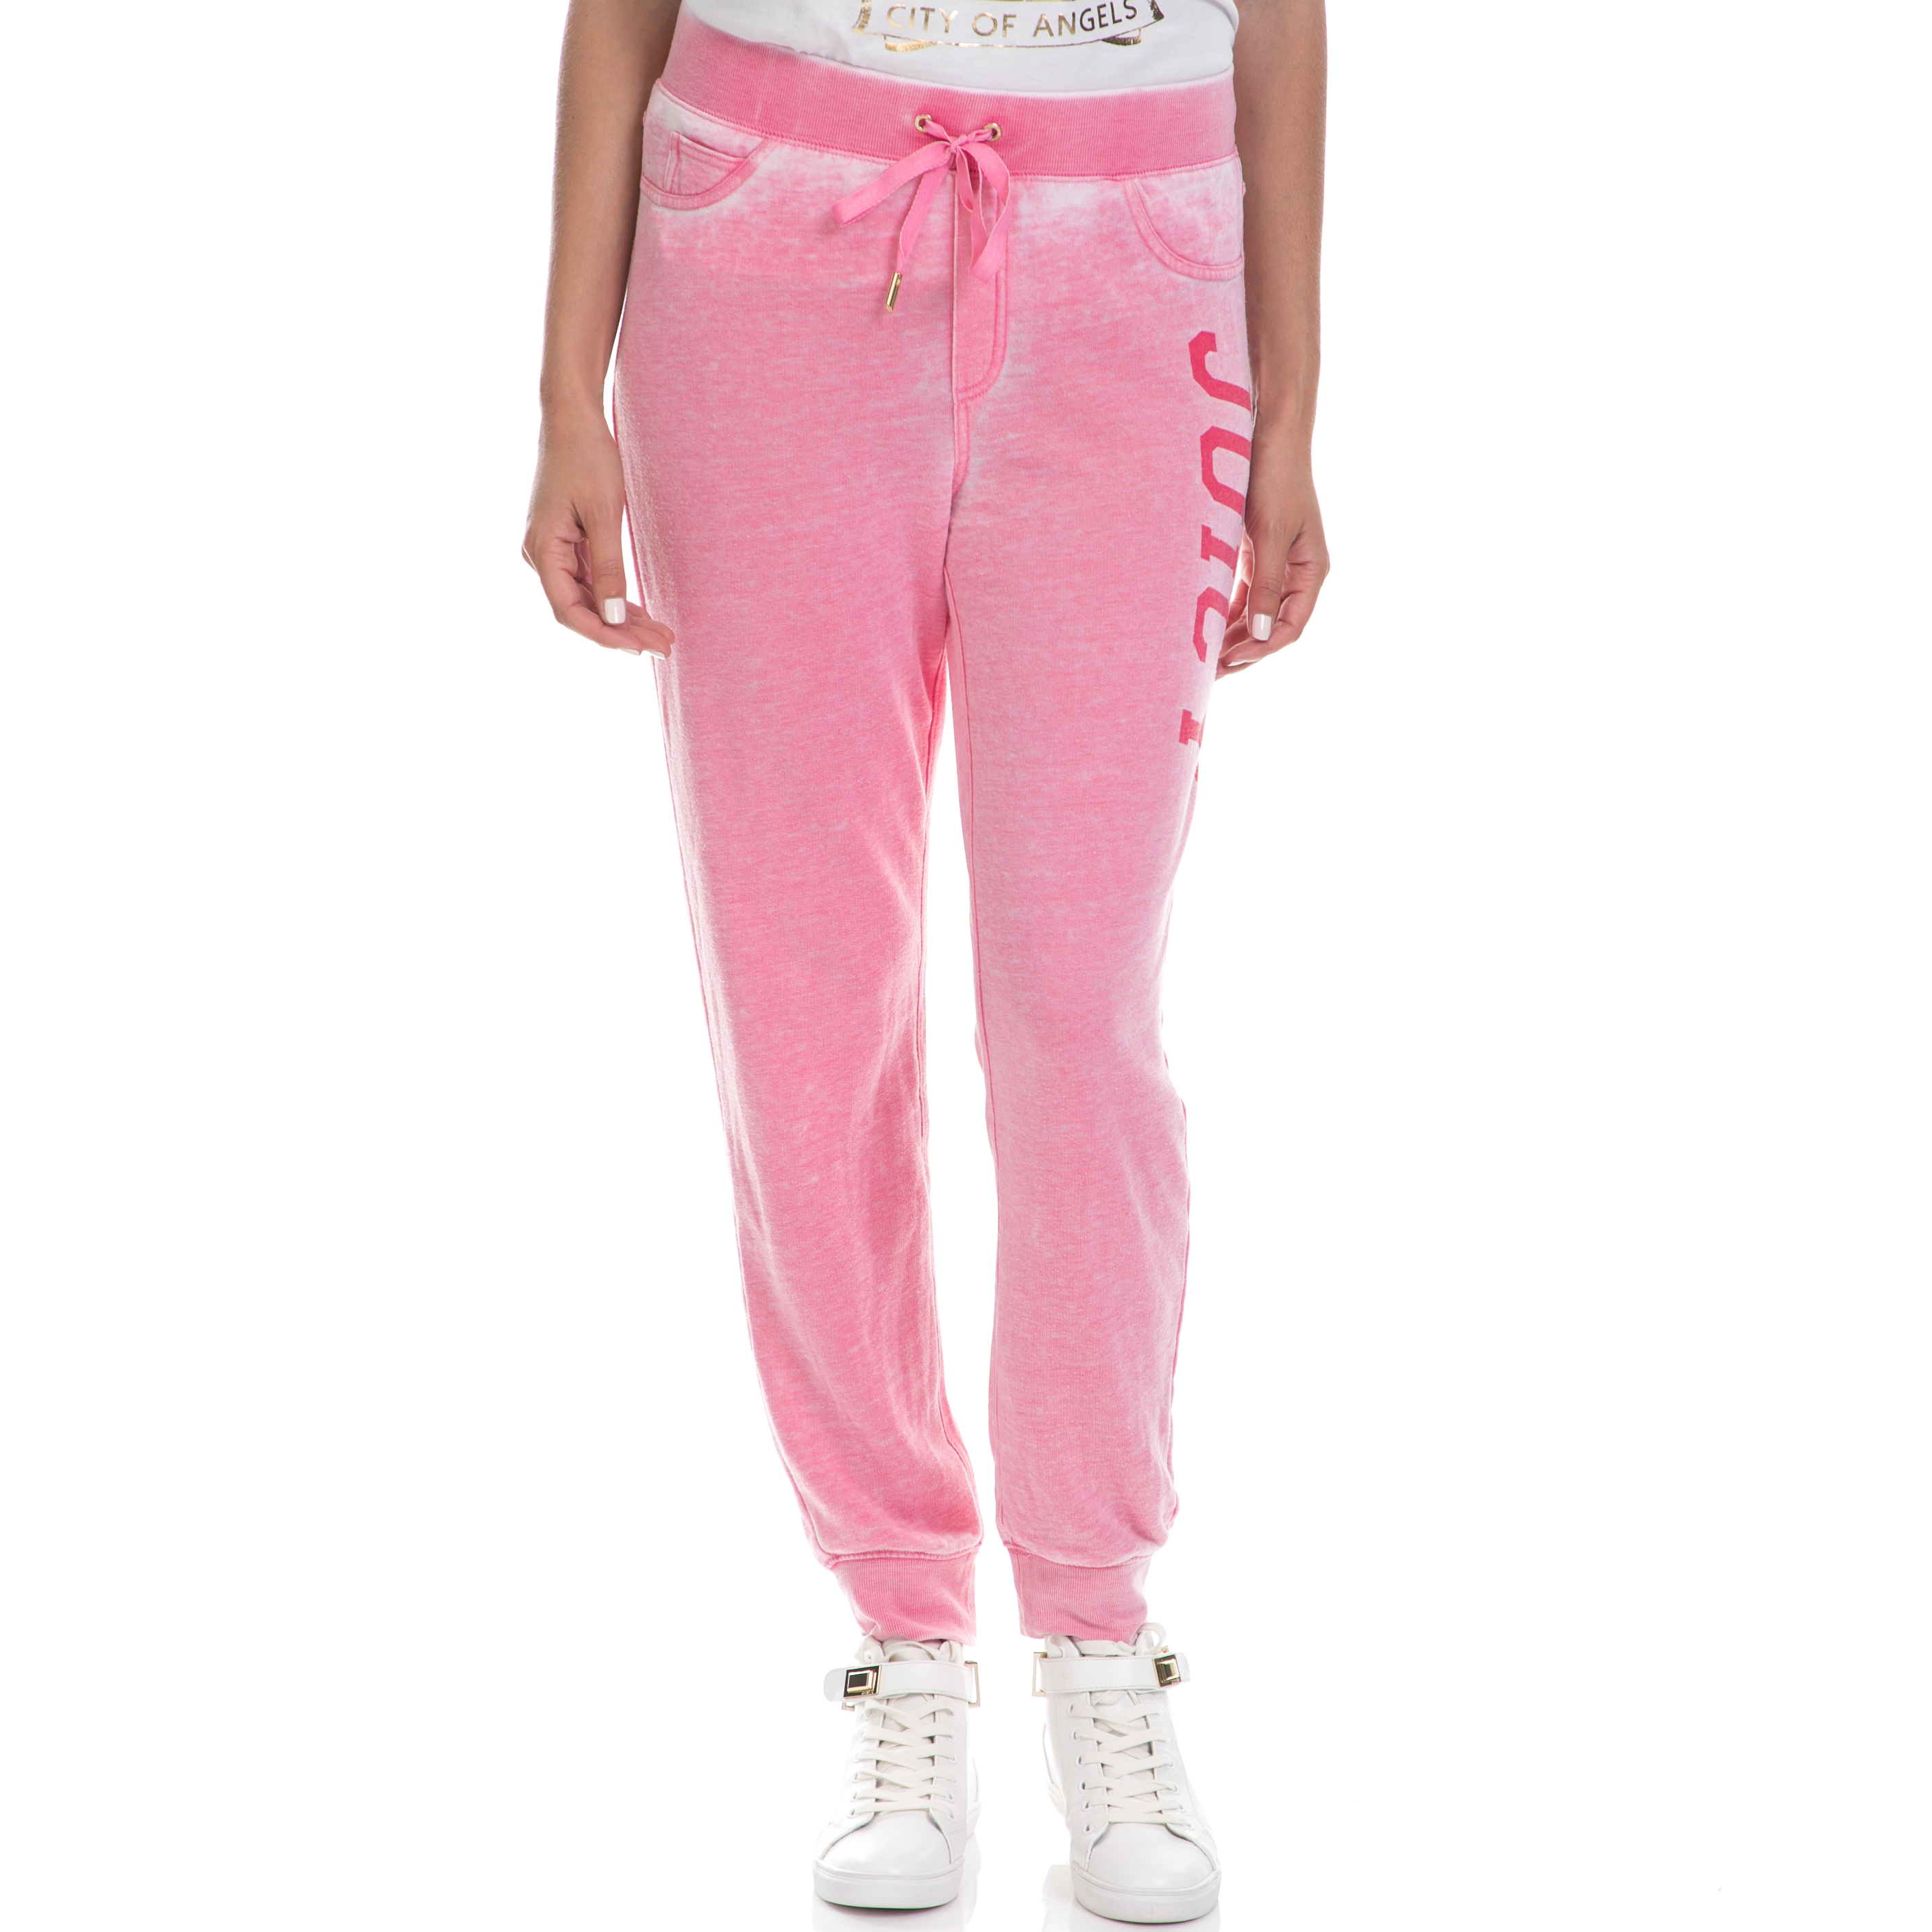 JUICY COUTURE – Γυναικεία φόρμα JUICY COUTURE ροζ